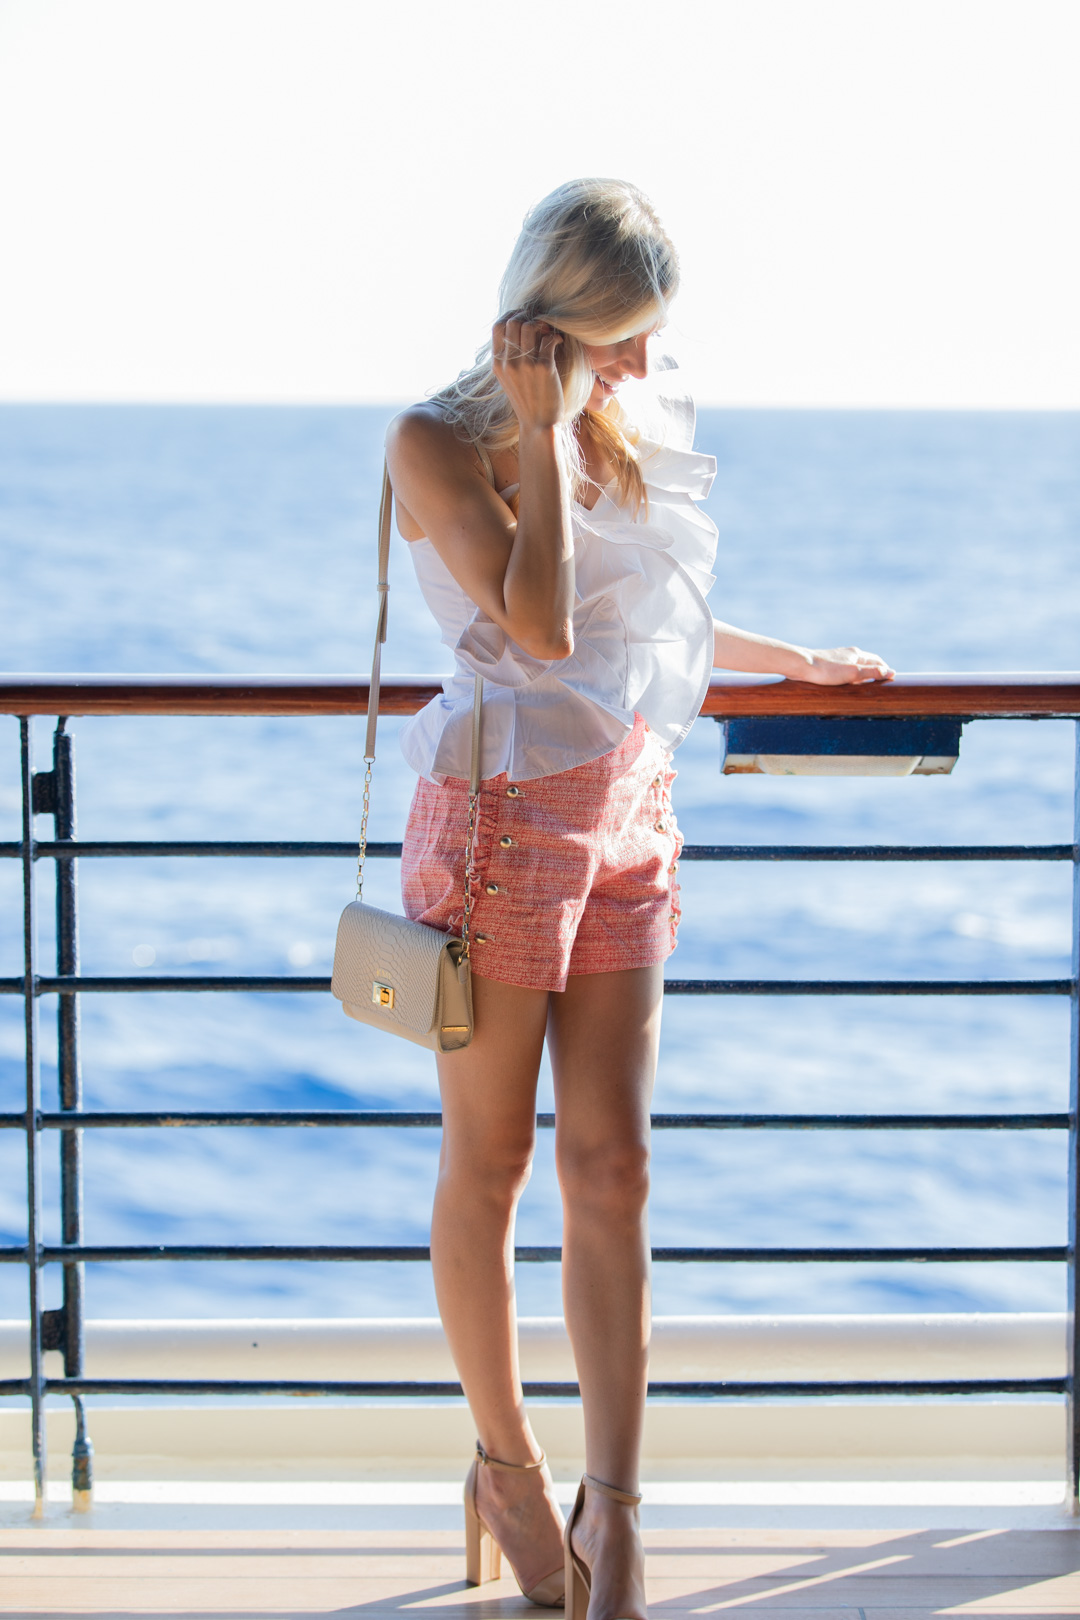 Club Monaco Shorts and Ruffle Top